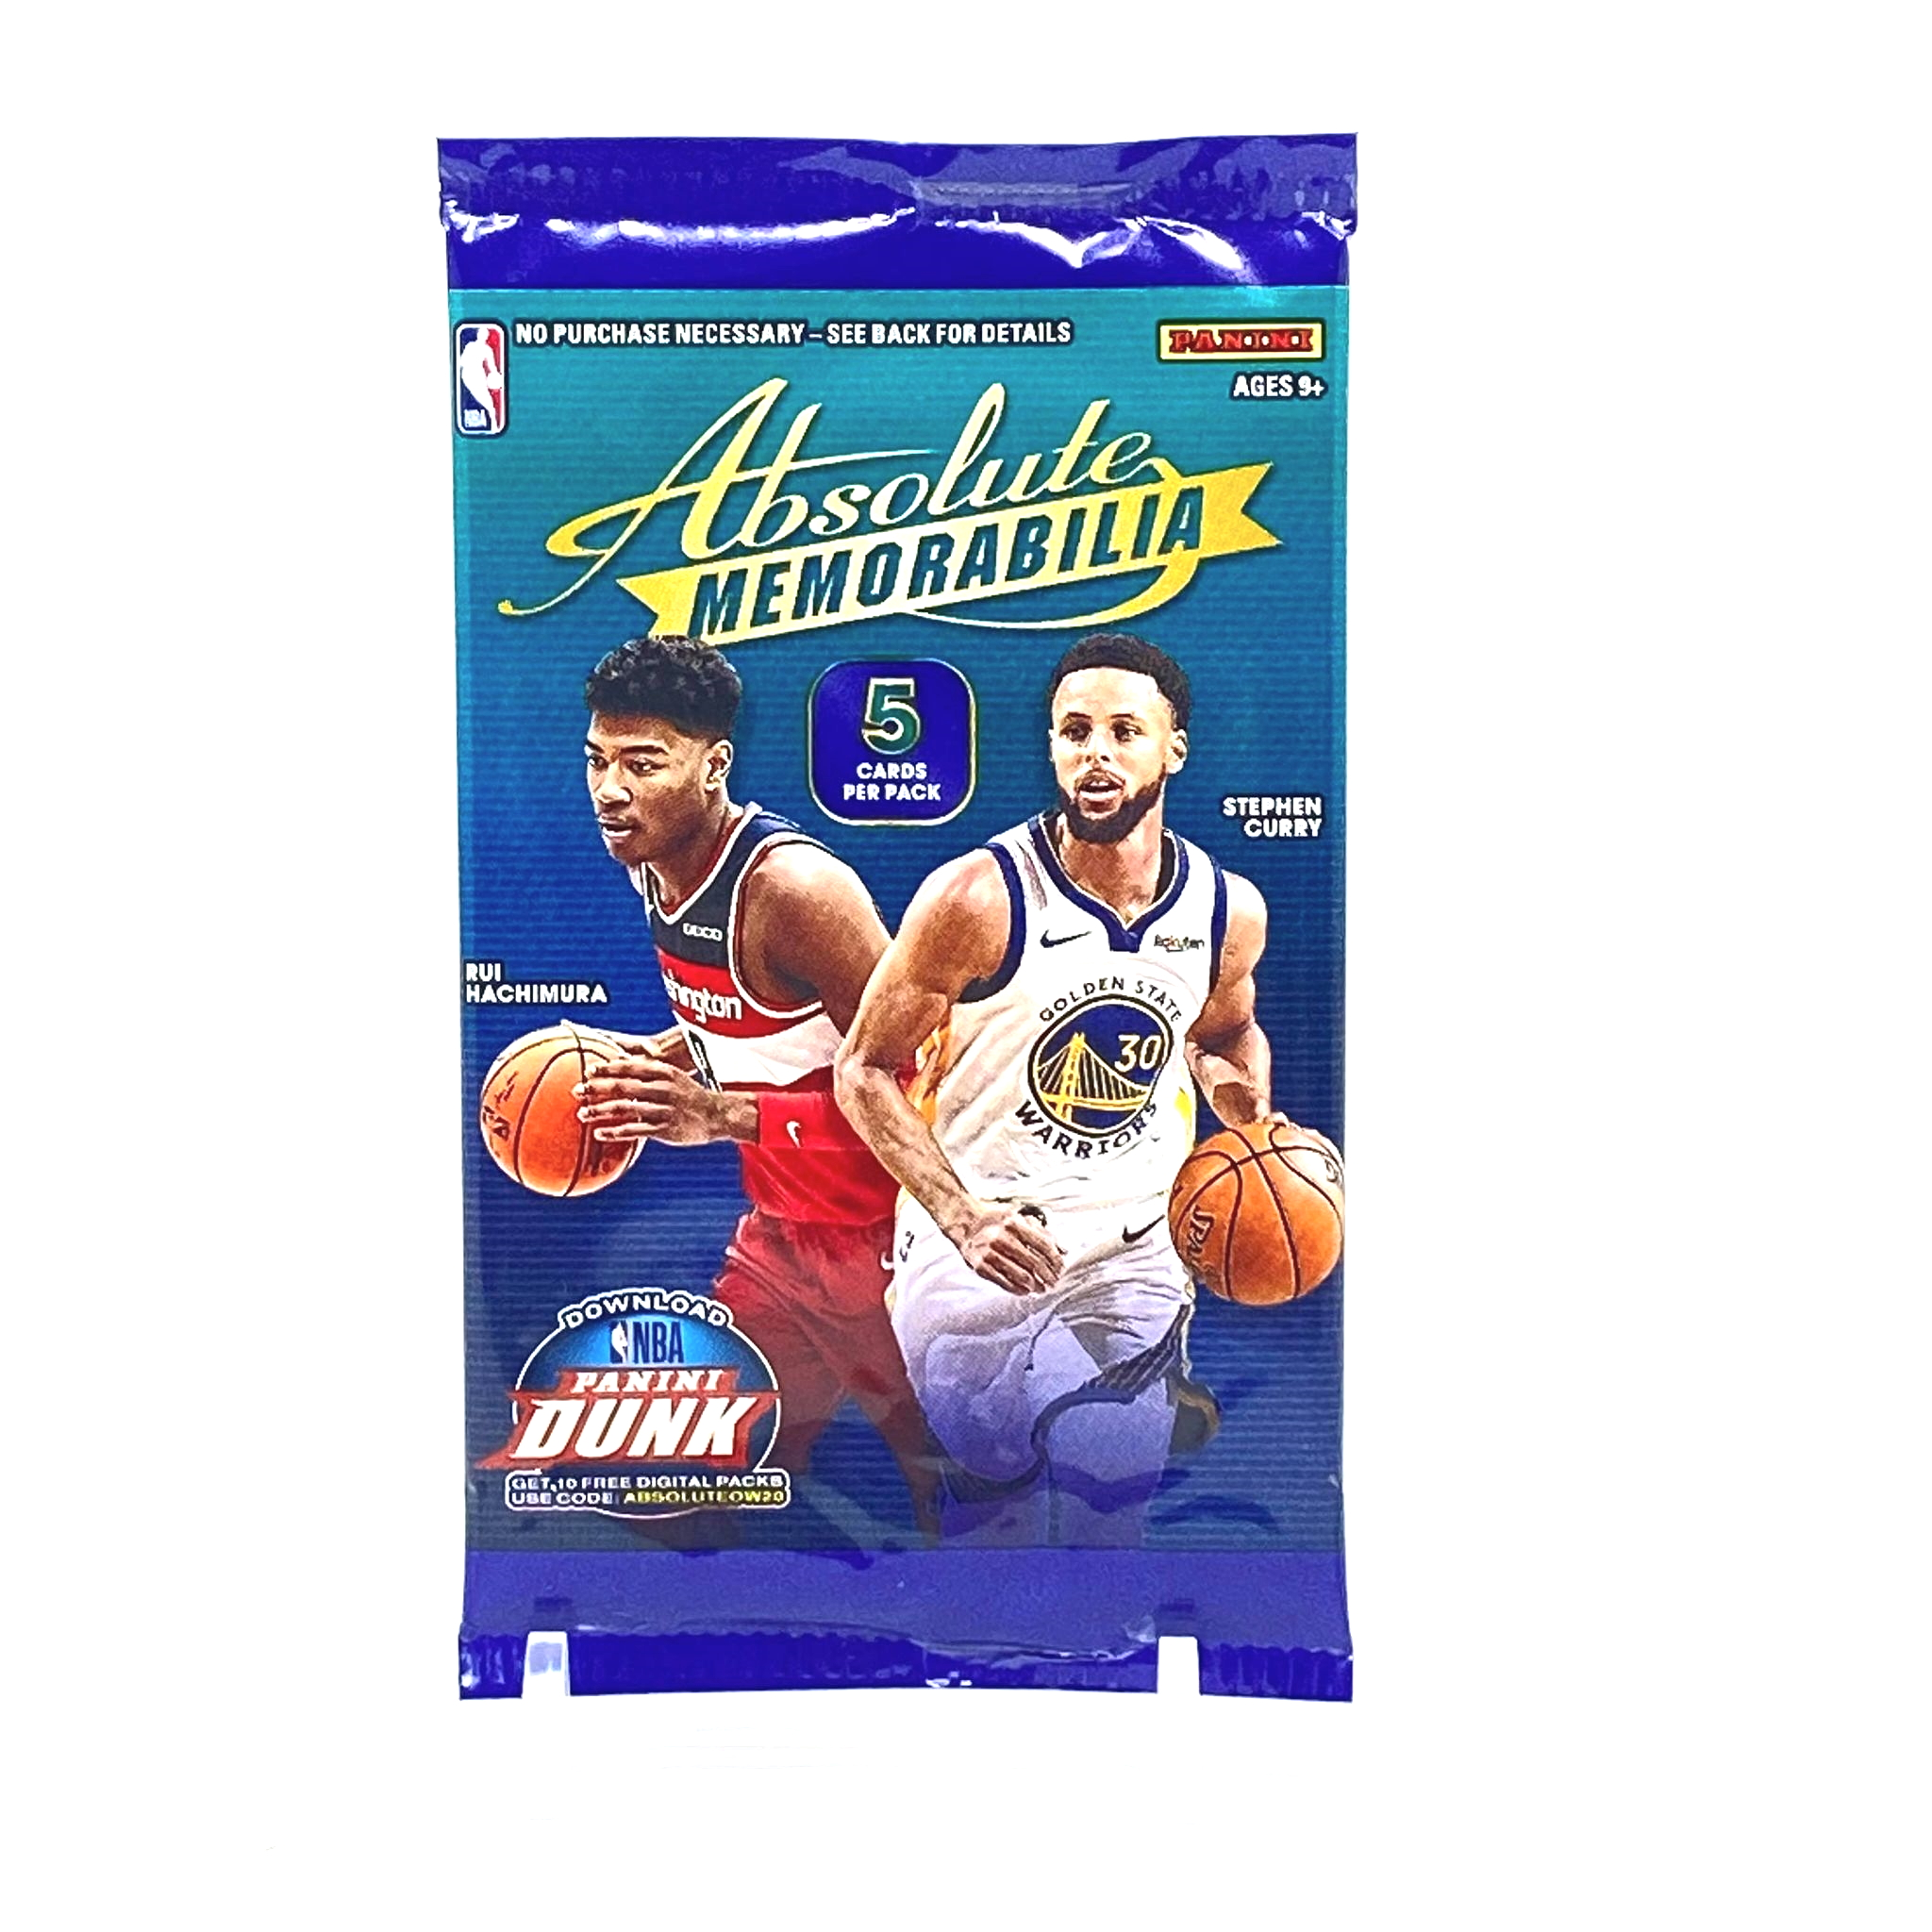 2019-20 Panini Absolute Memorabilia Basketball Gravity Pack (Ships Sealed)